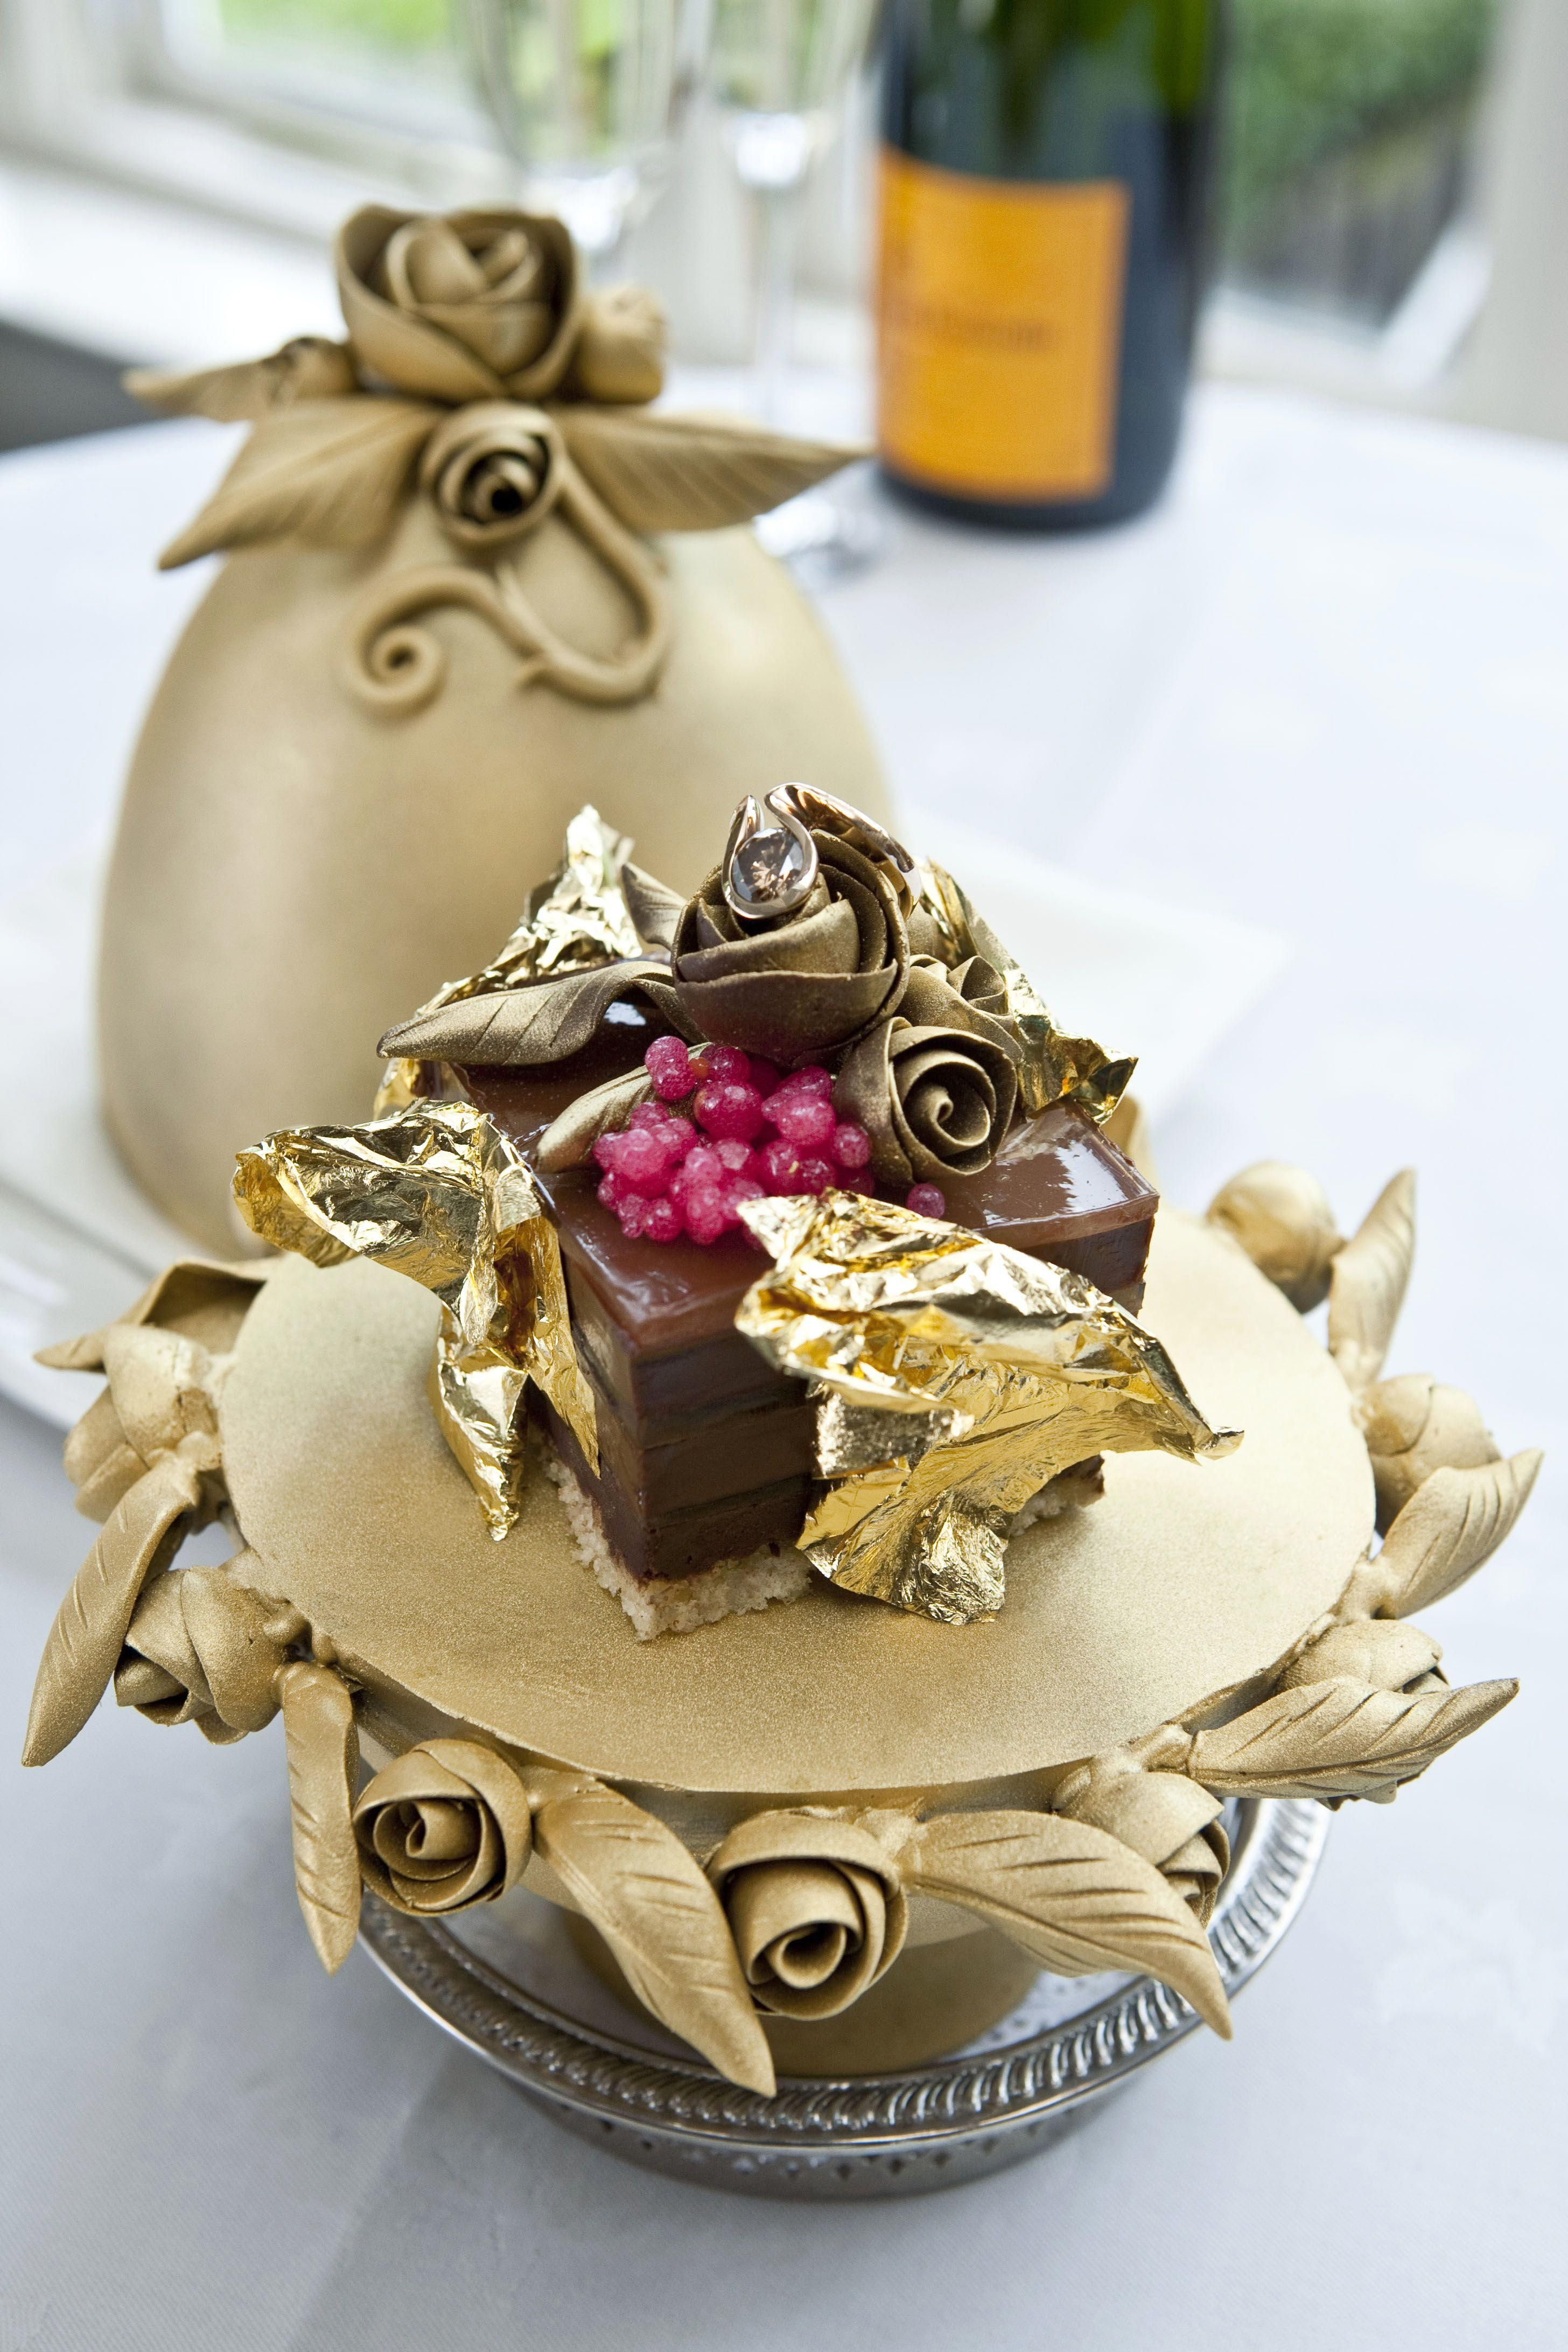 worlds most expensive chocolate | From Belgium, this company uses ...